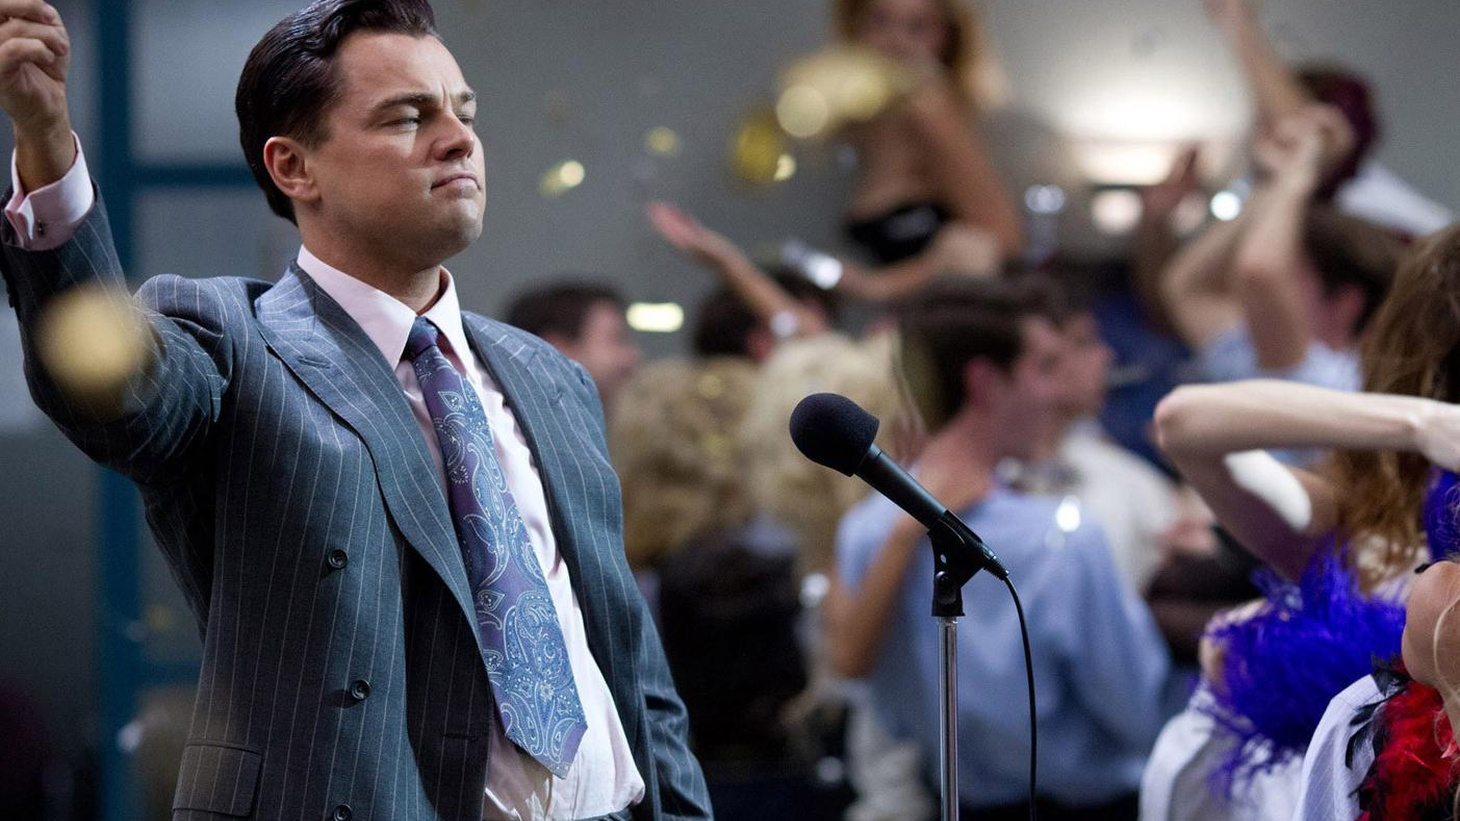 """In """"The Wolf of Wall Street"""" Leonardo DiCaprio plays Jordan Belfort, the celebrated crook of the 1990's"""